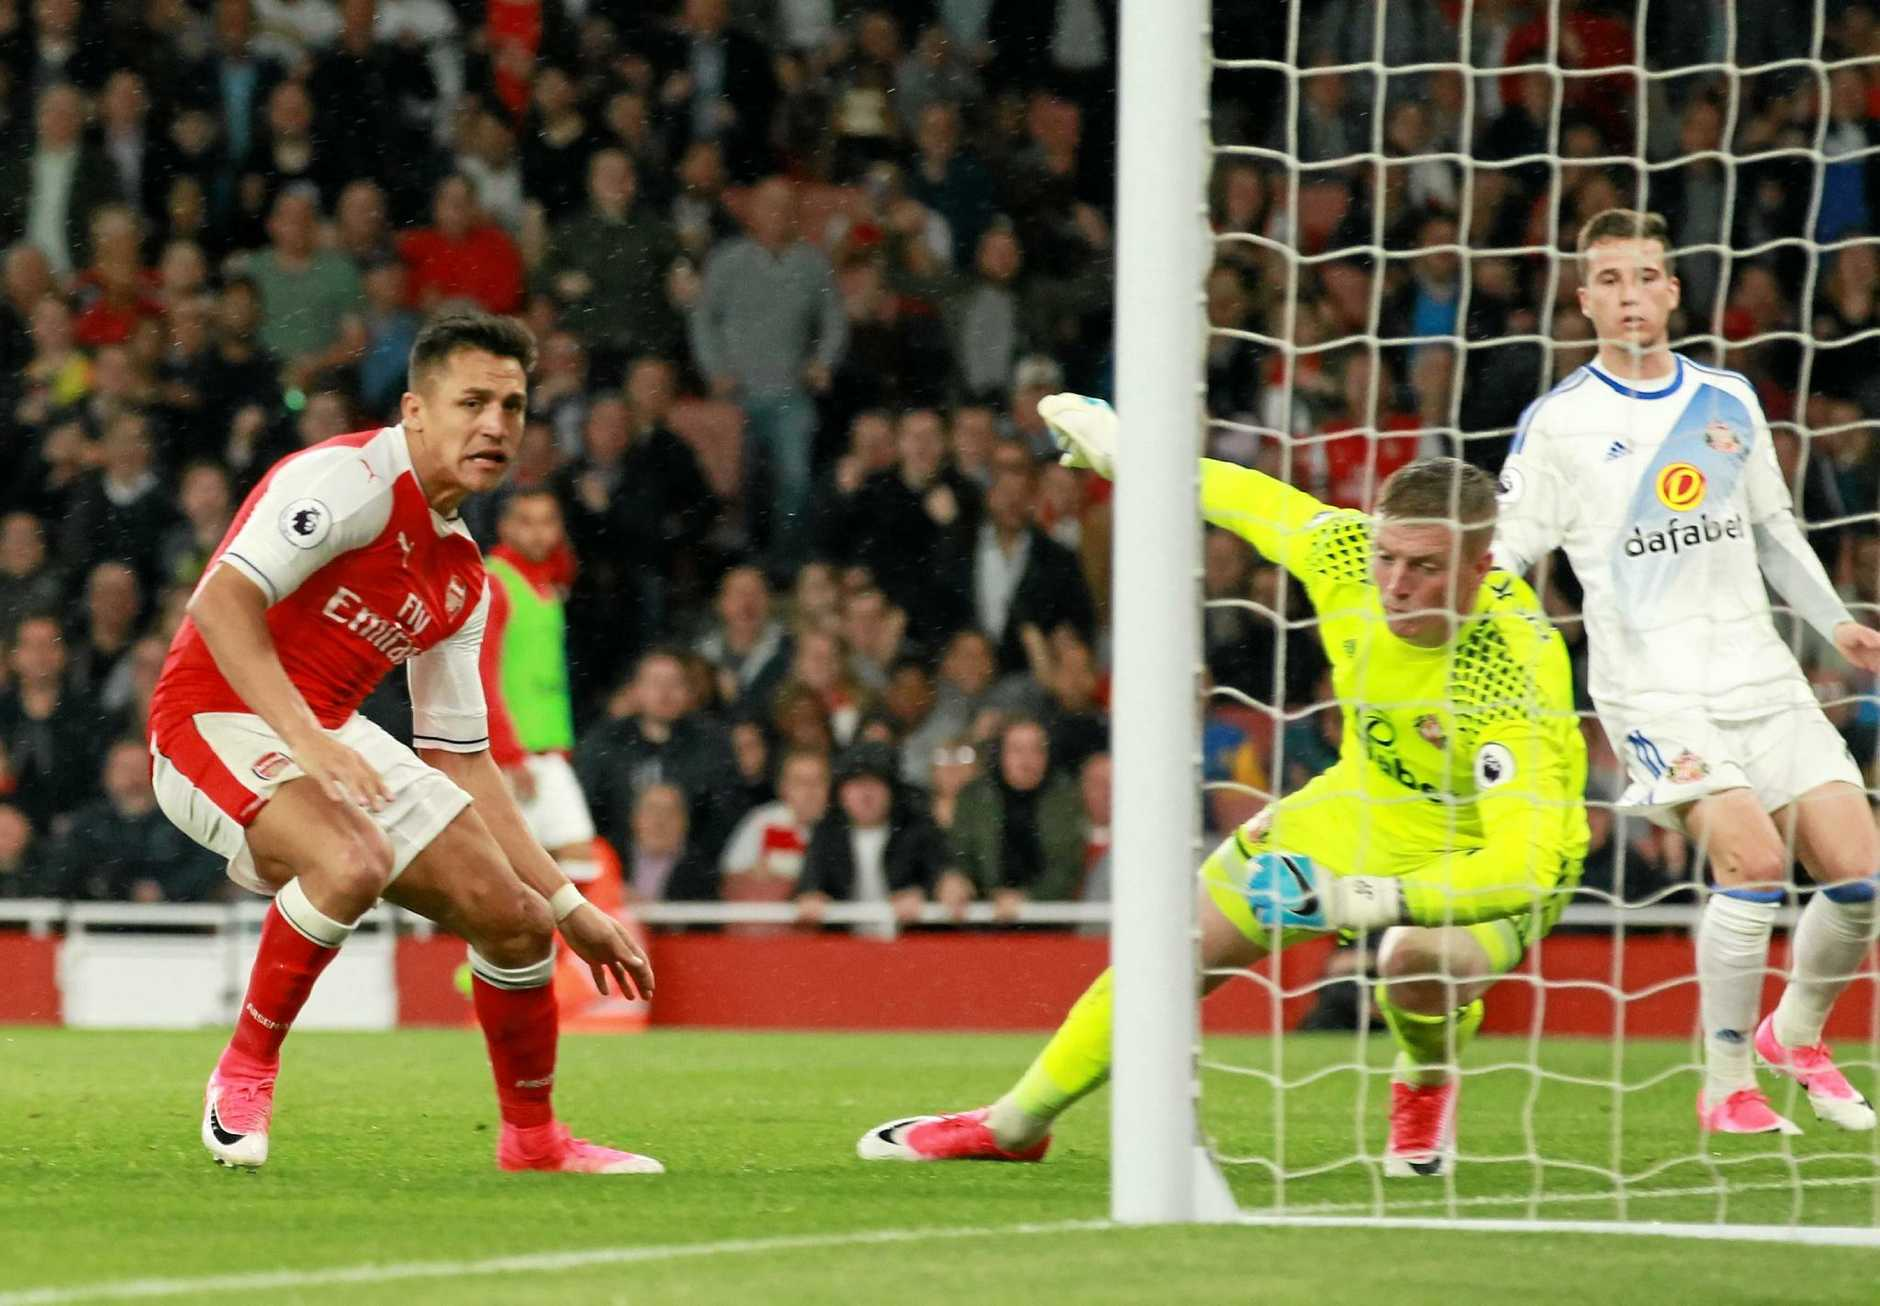 Arsenal's Alexis Sanchez (left) scores a goal against Sunderland in the 2-0 win.